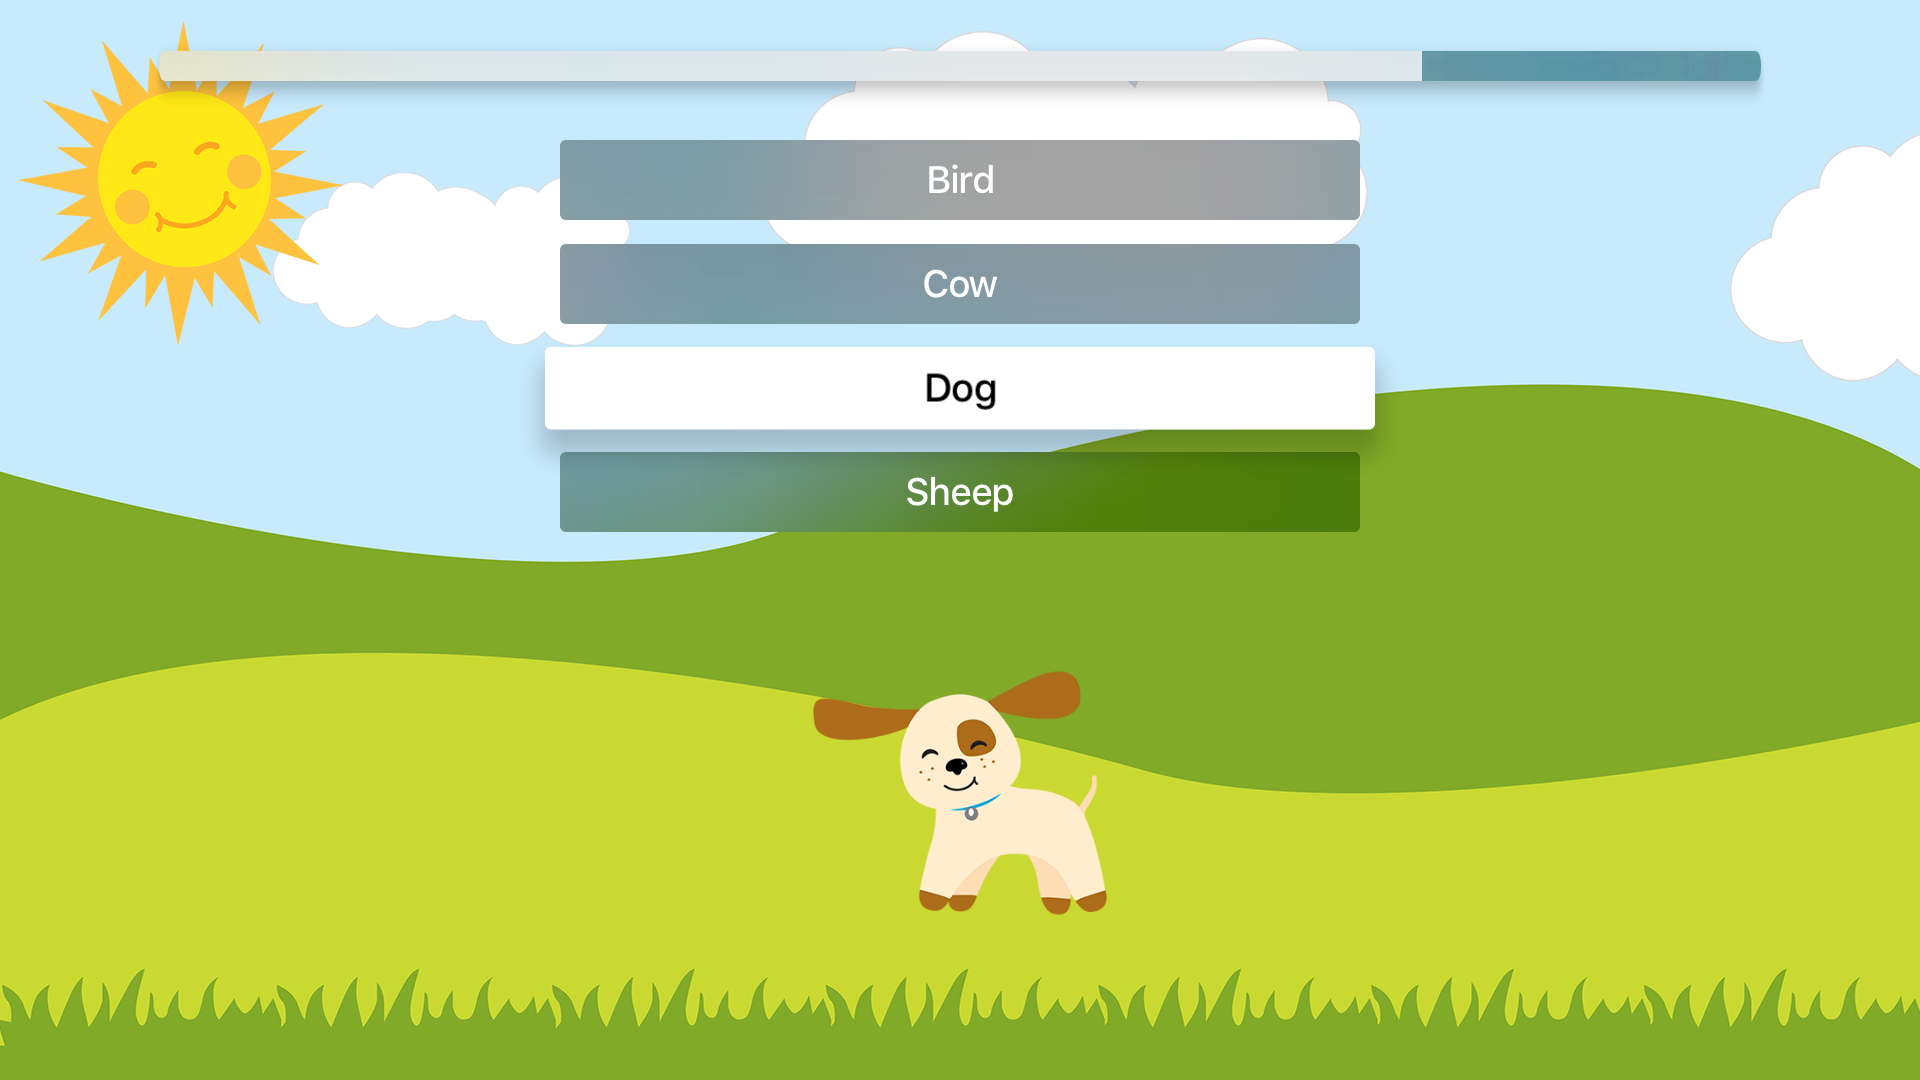 Quiz of Animals screenshot 3